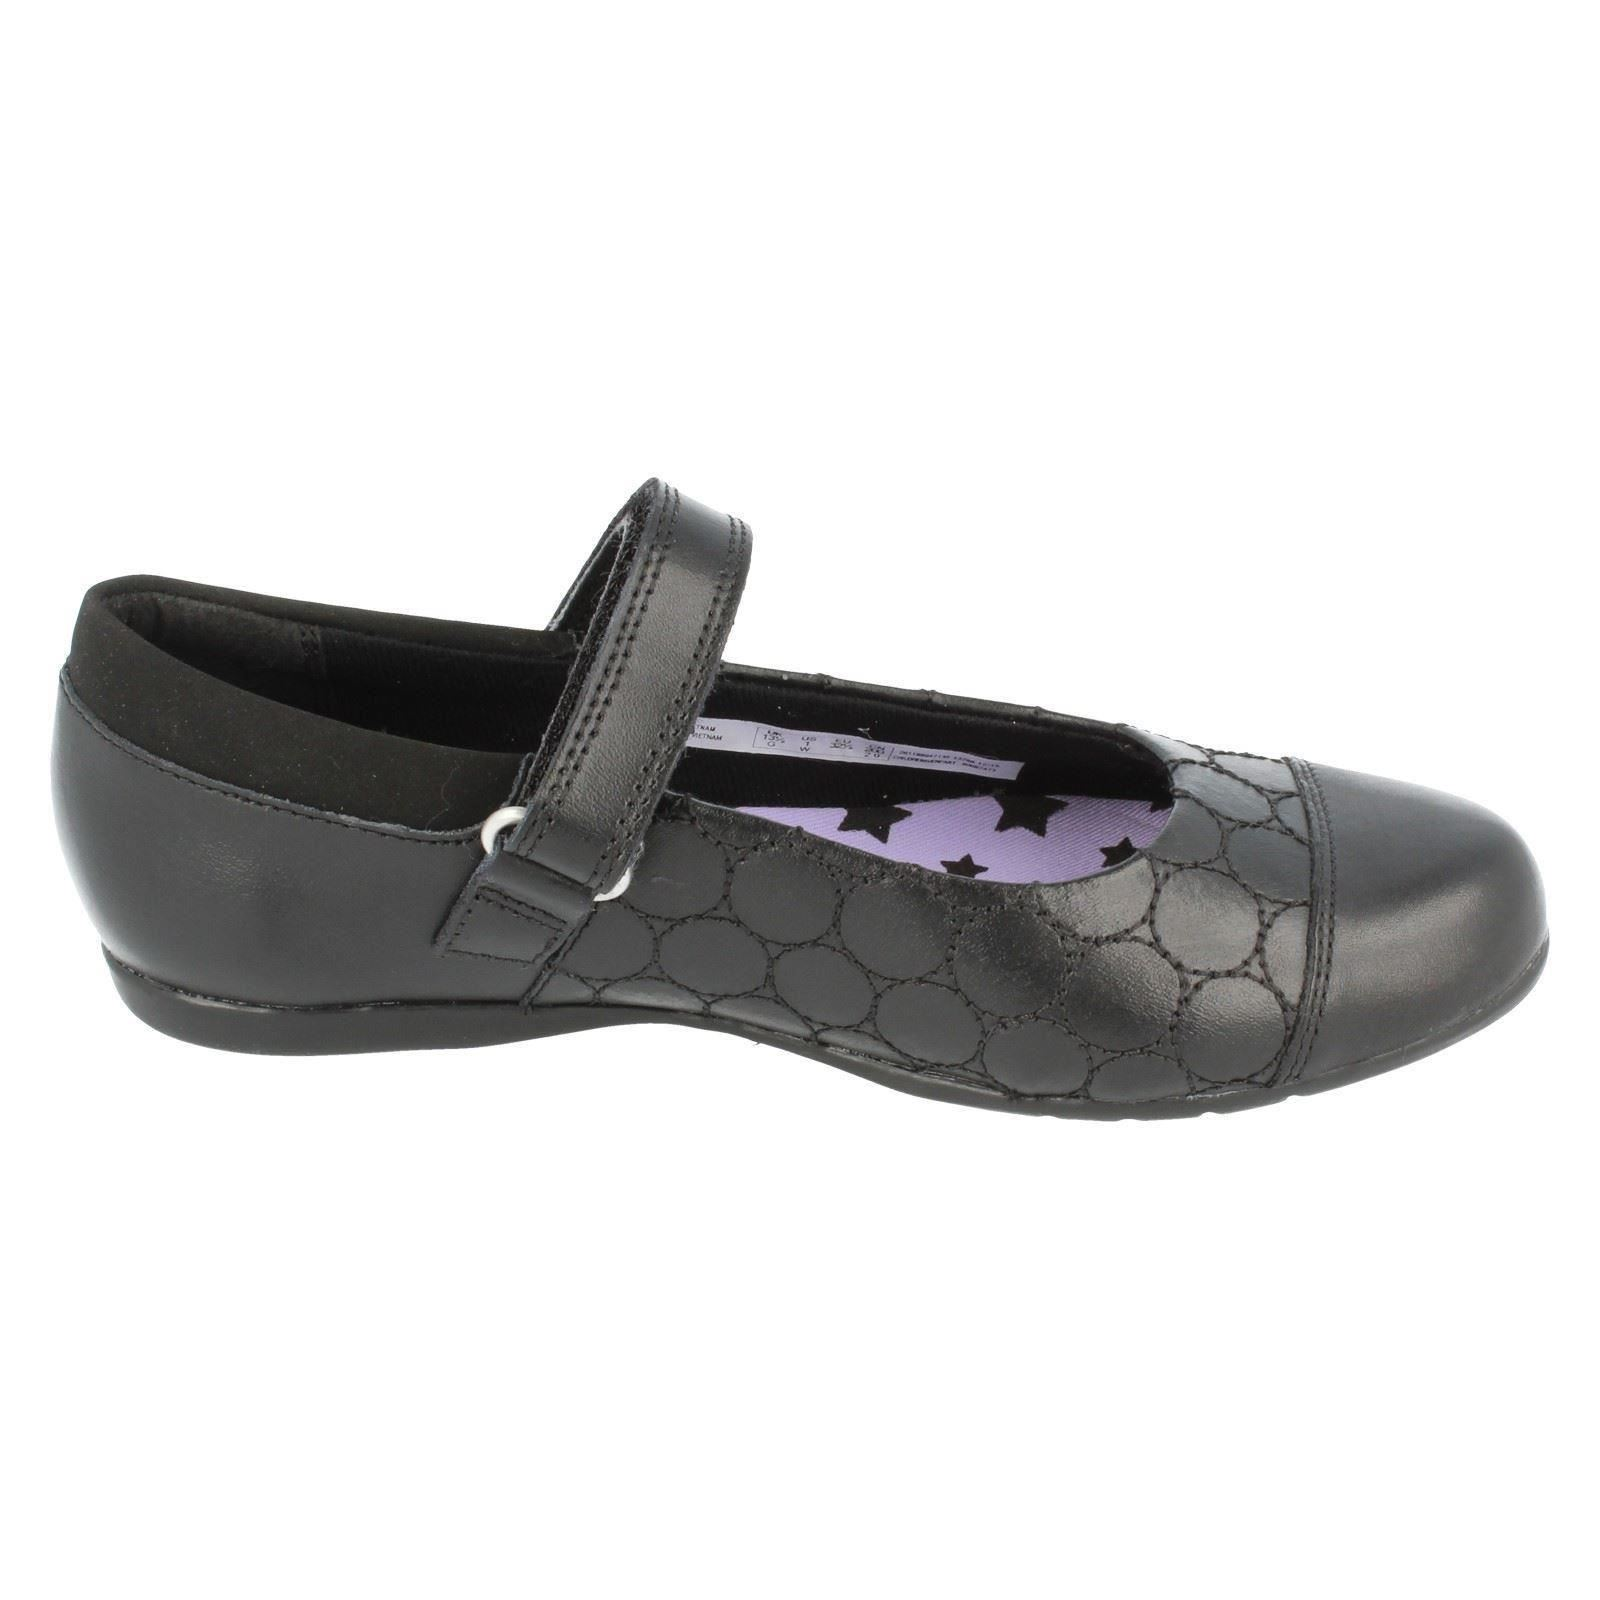 Girls Clarks Hook And Loop Fastening Shoe The Styel - Dance Buzz Jnr